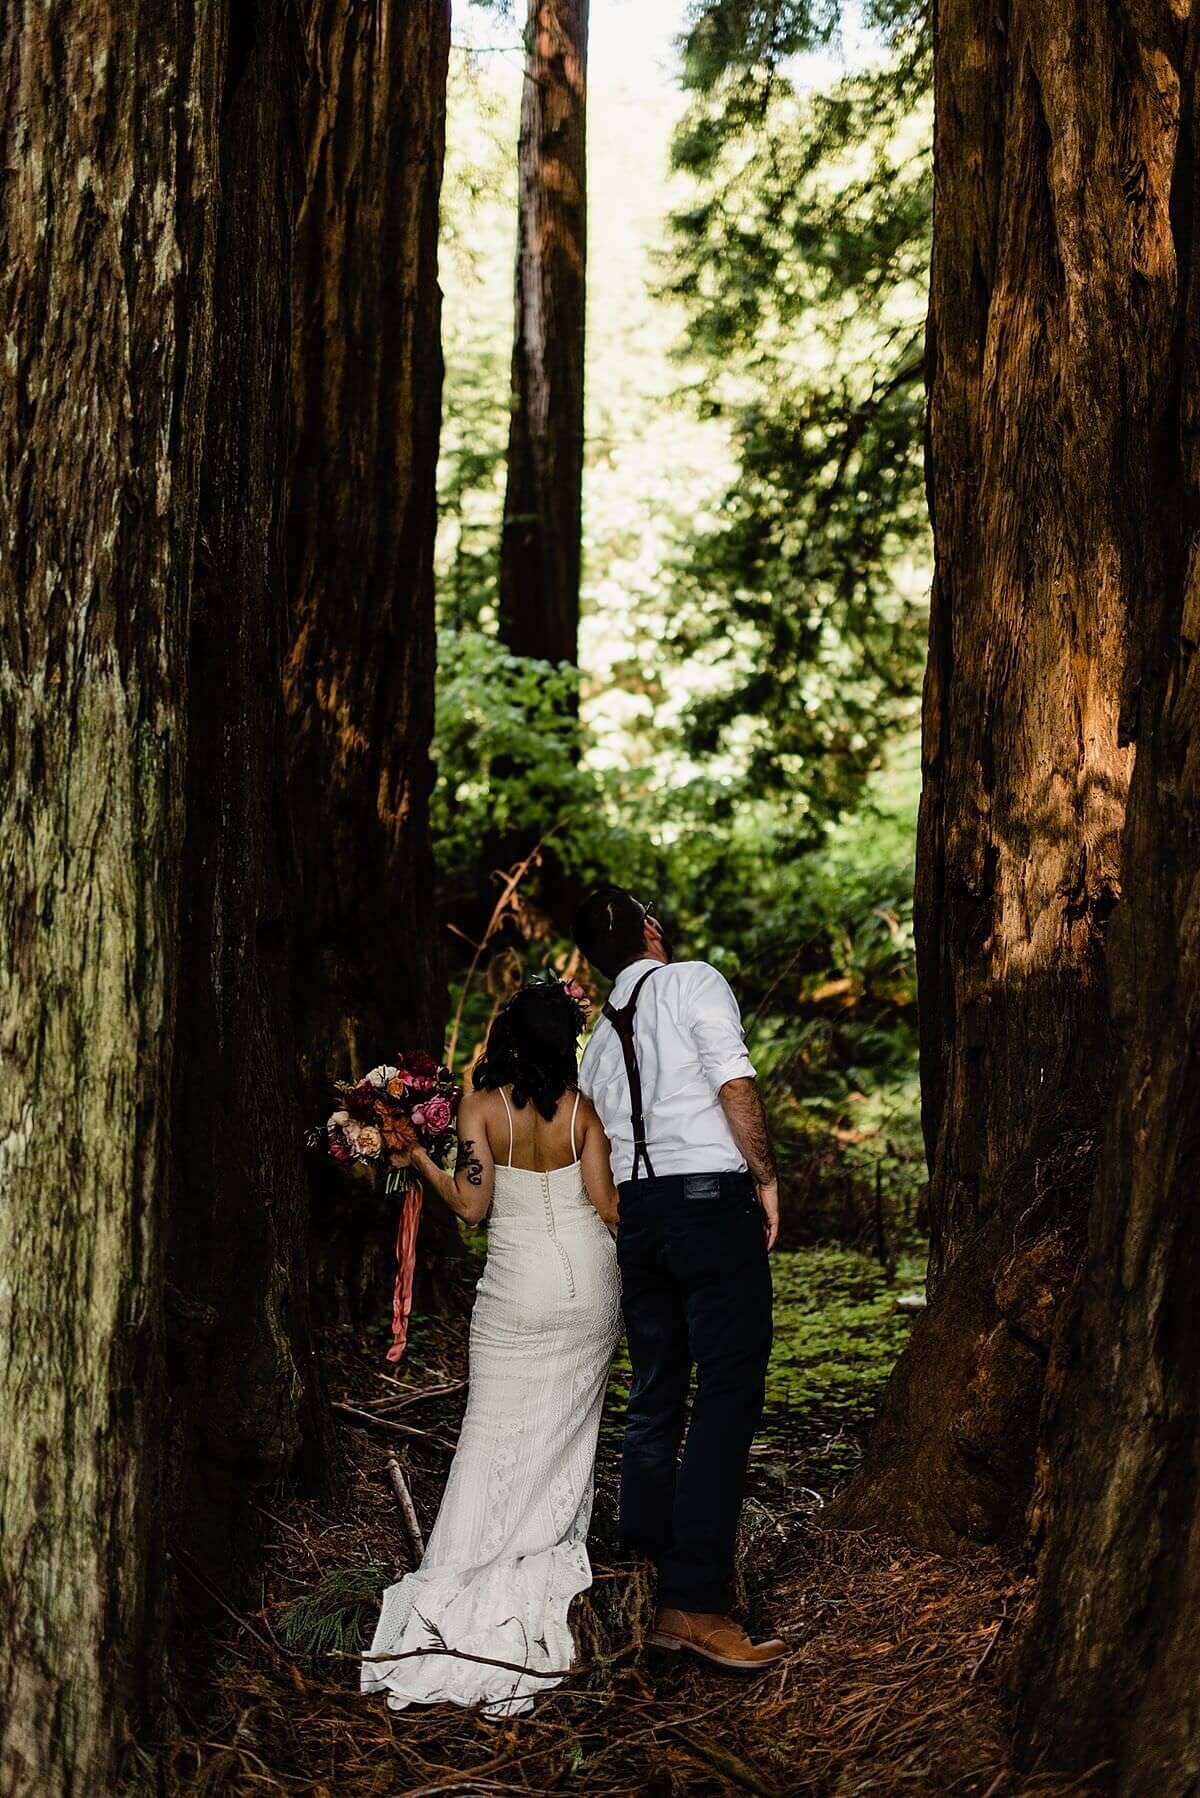 Allison-Brooks-Jedediah-Smiith-Redwoods-Adventure-Elopement-Wedding-S-Photography-Blog_0004.jpg